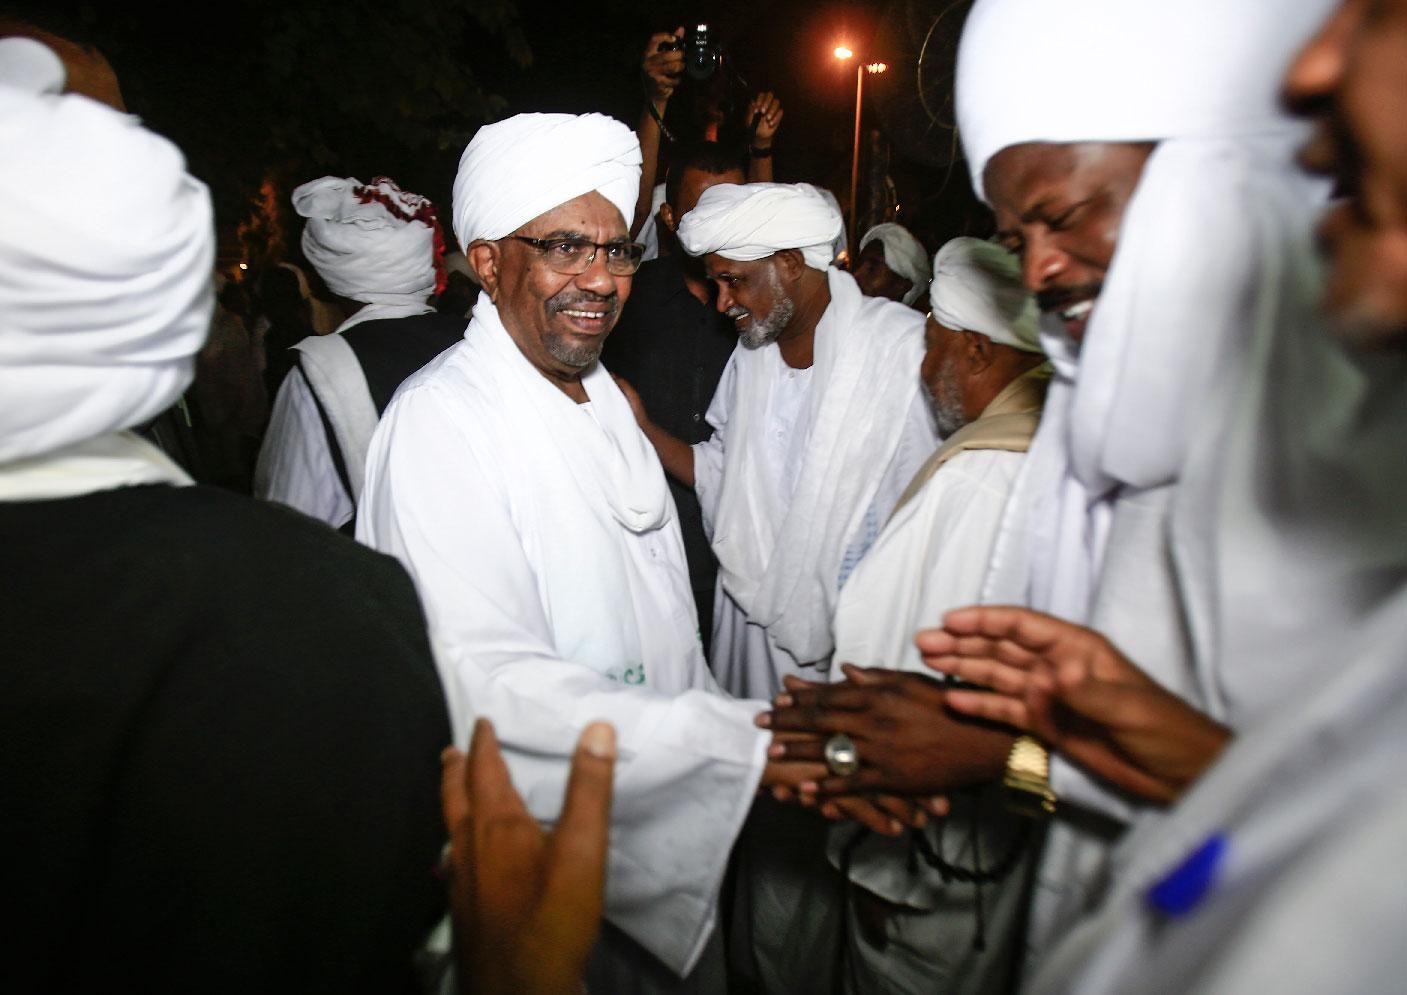 Sudanese President Omar al-Bashir shakes hands with Sufi Muslim clerics at the presidential palace in the capital Khartoum on January 3, 2019.